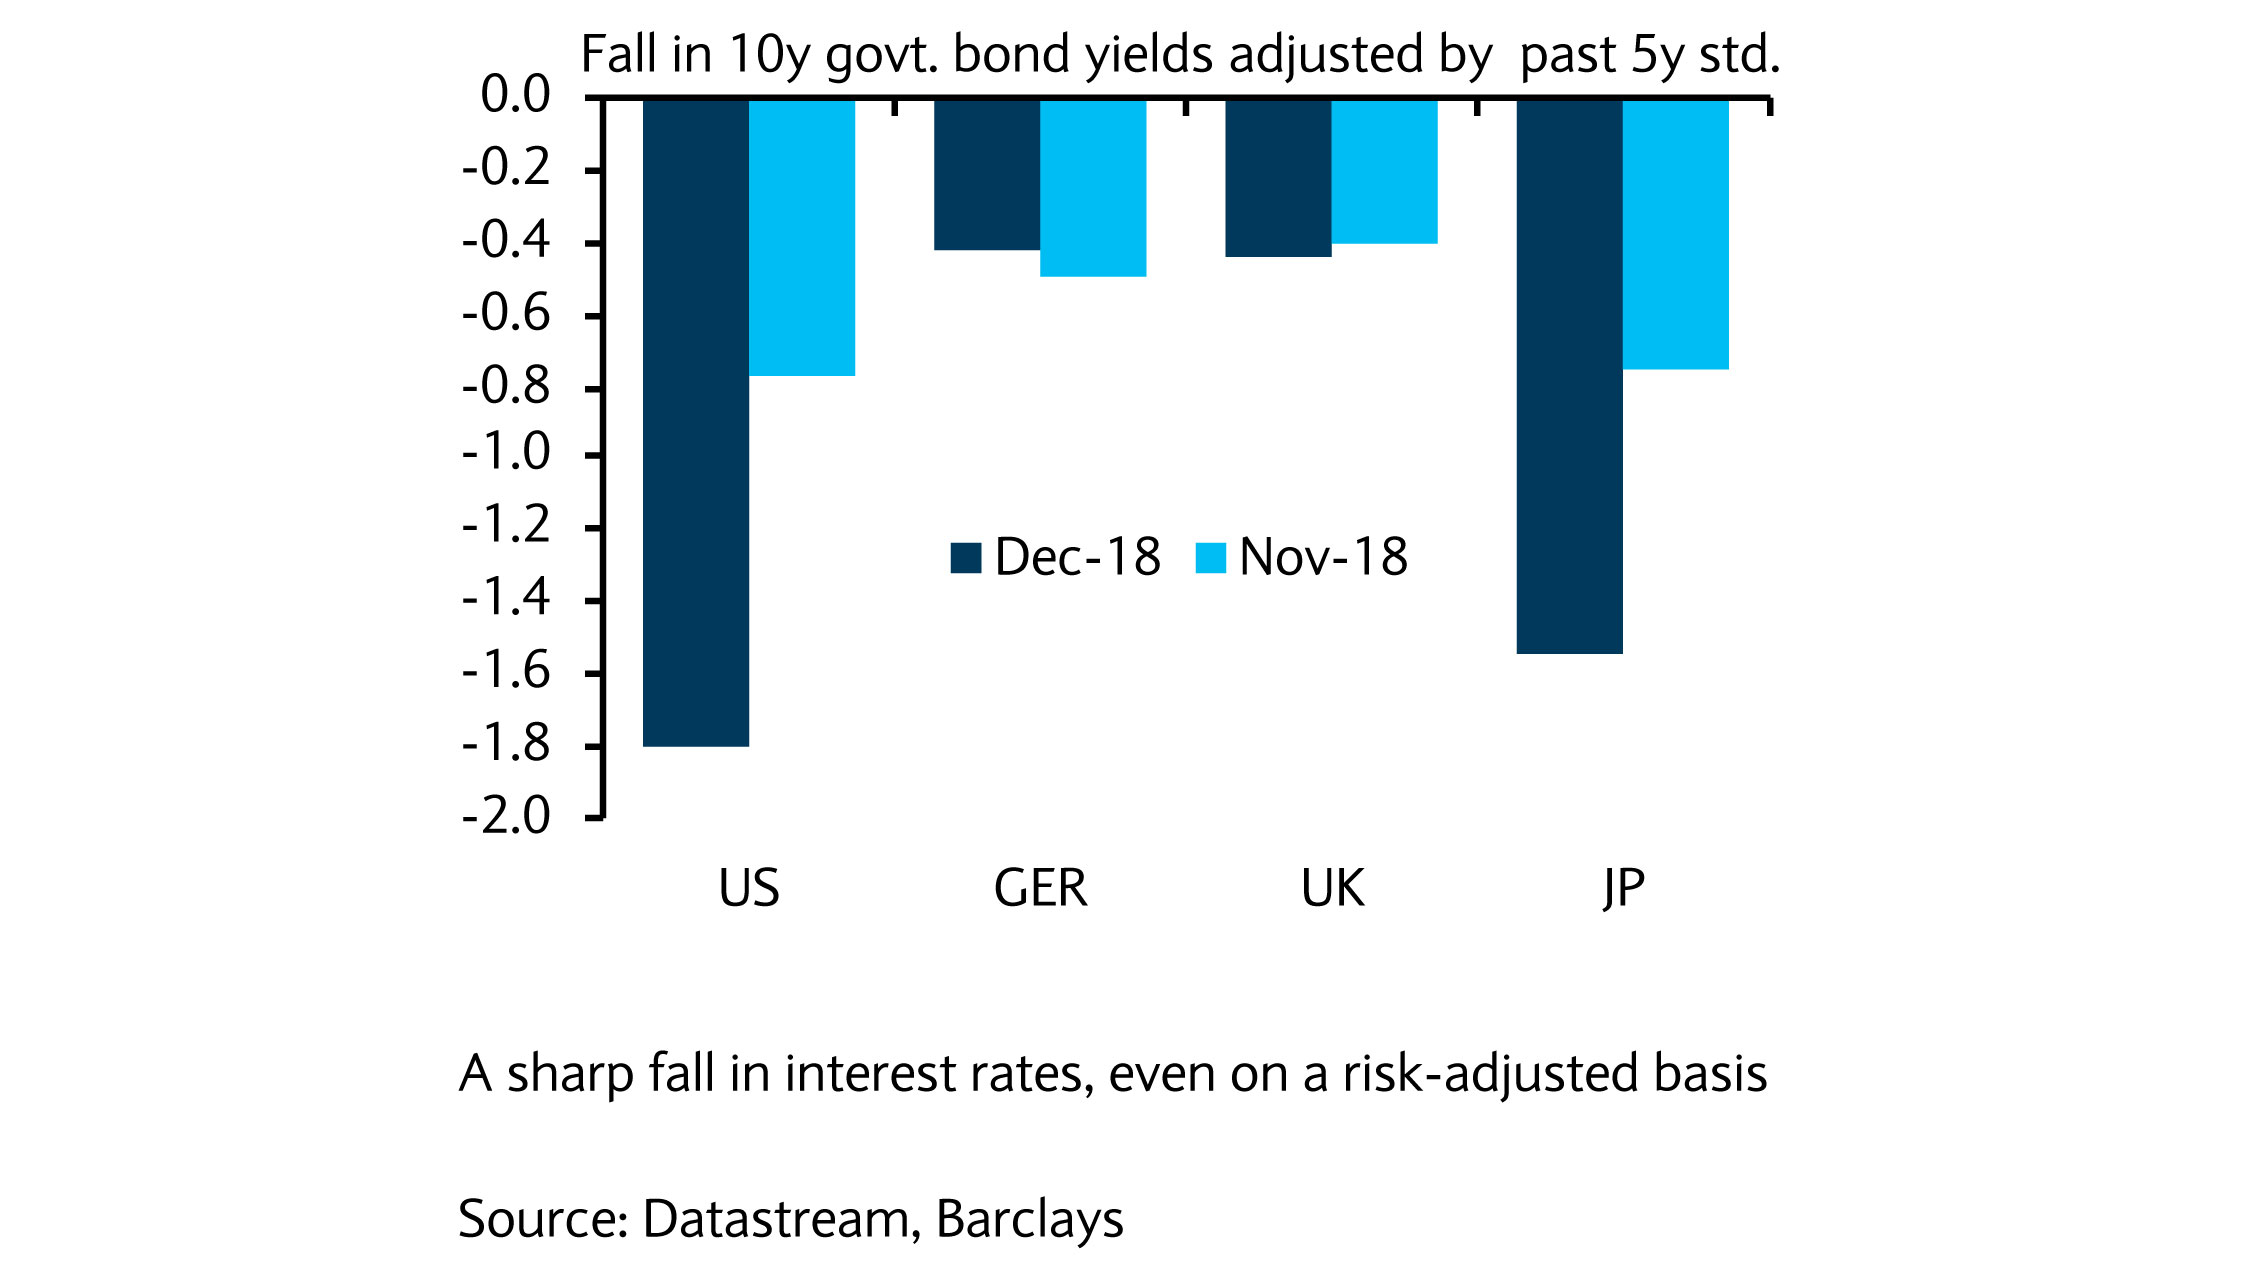 Fall in interest rates